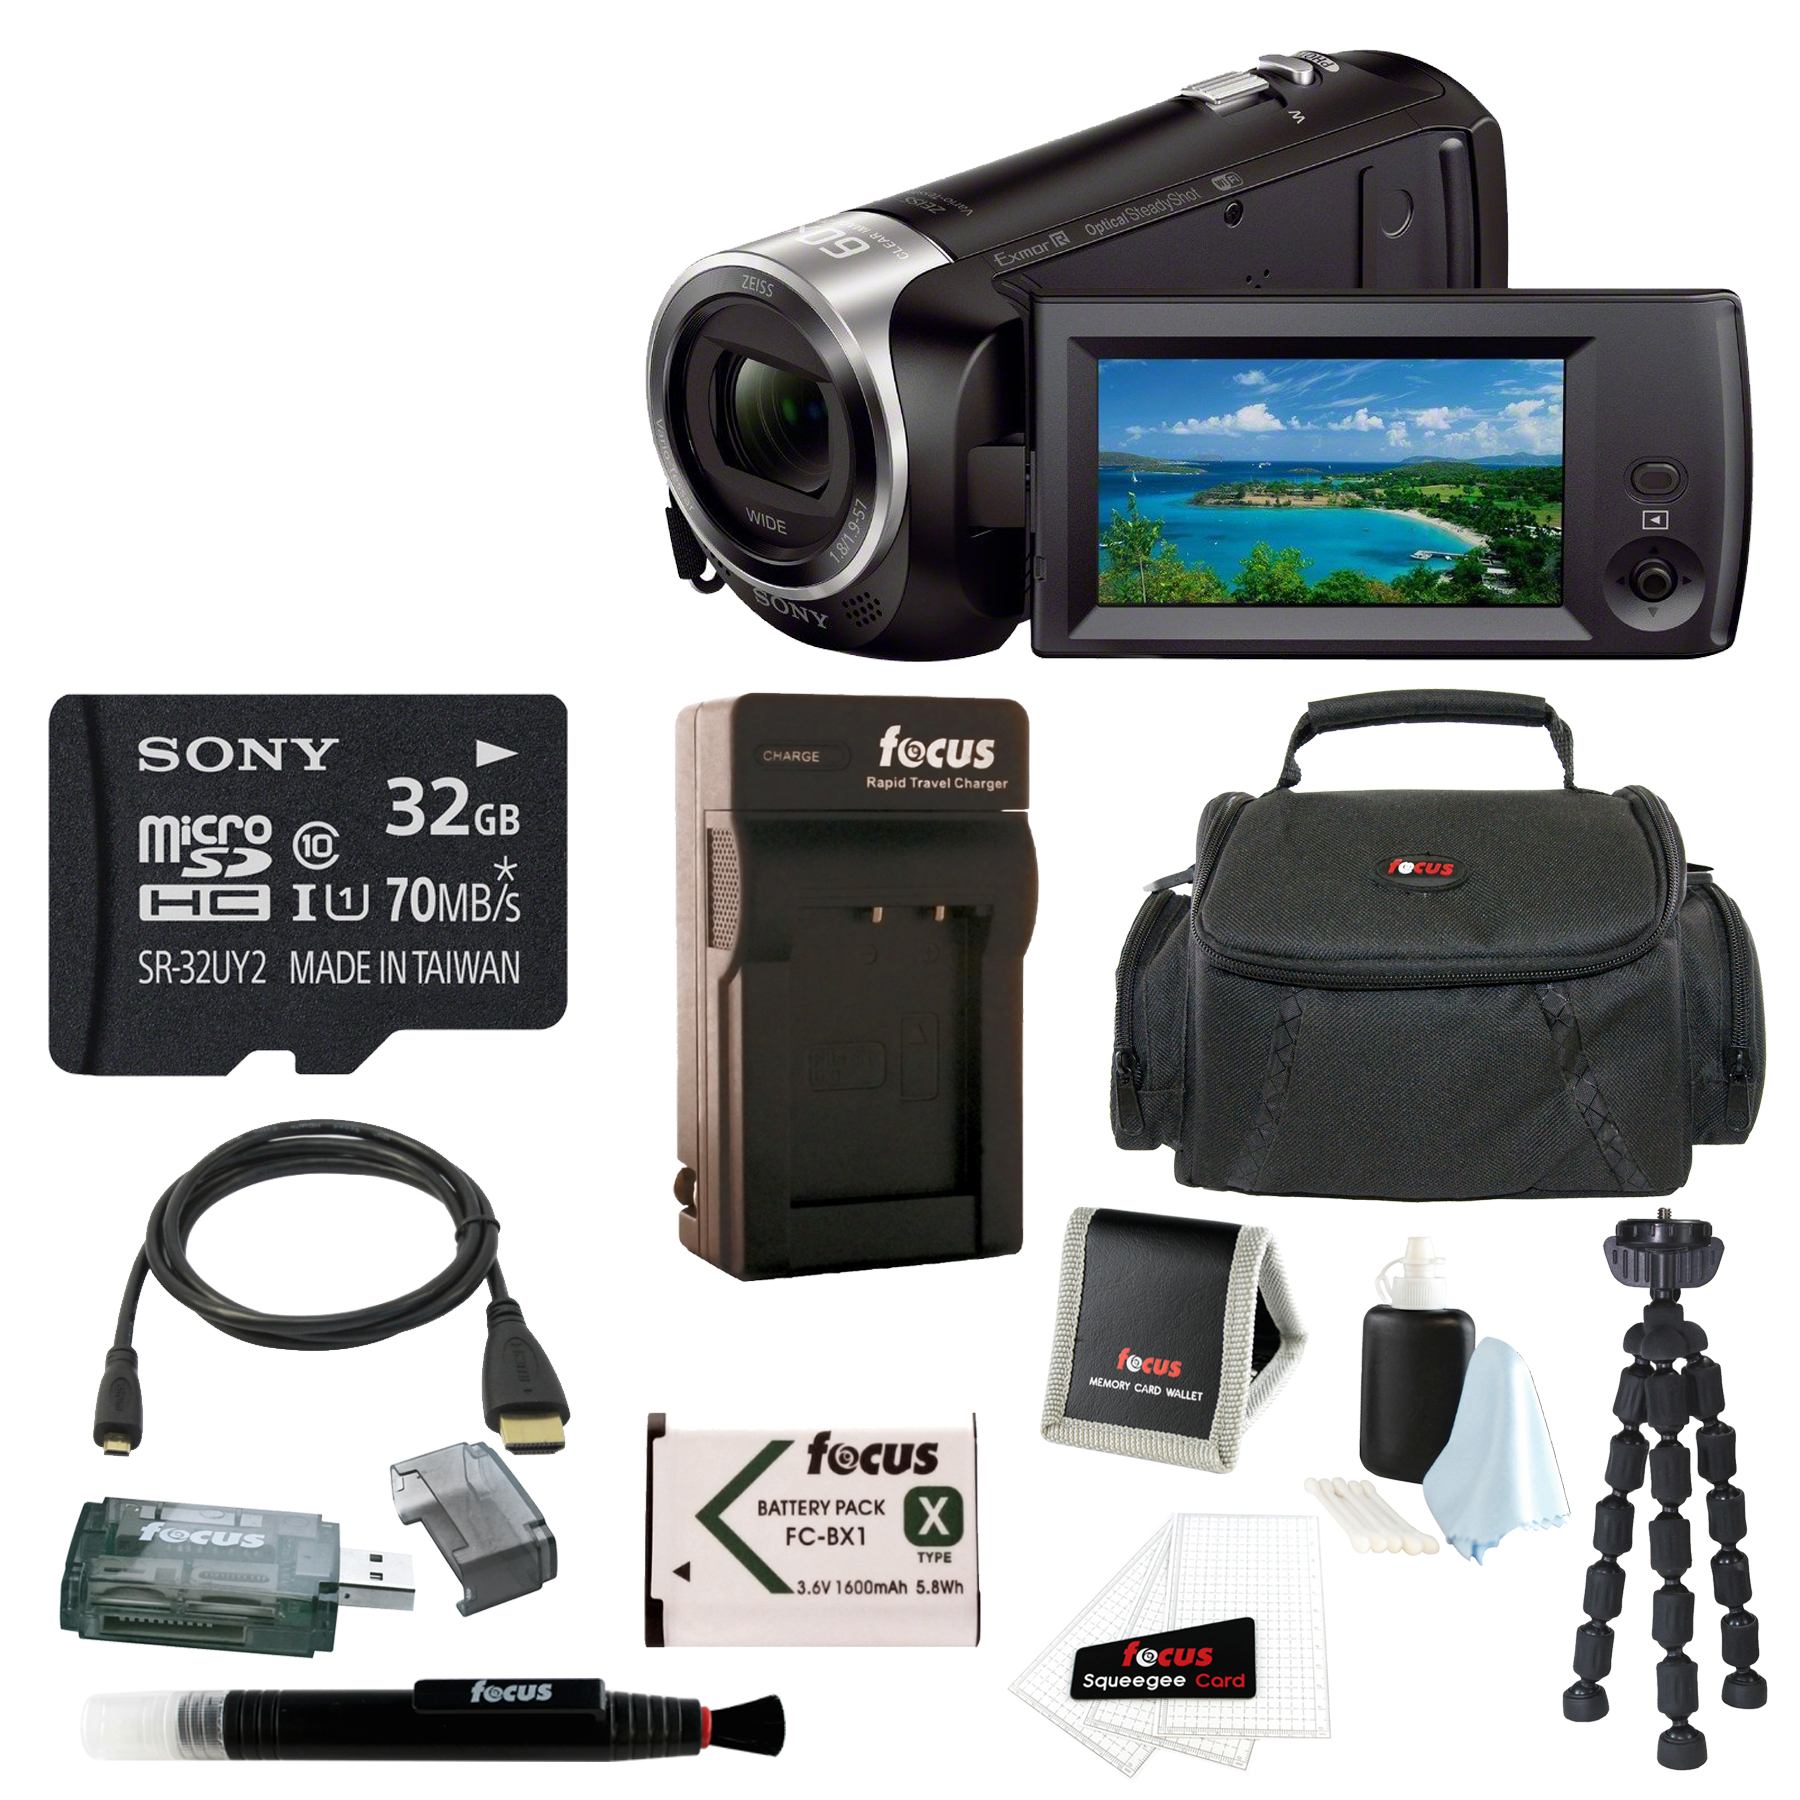 Sony HD Video Recording HDRCX440 Handycam Camcorder with ...